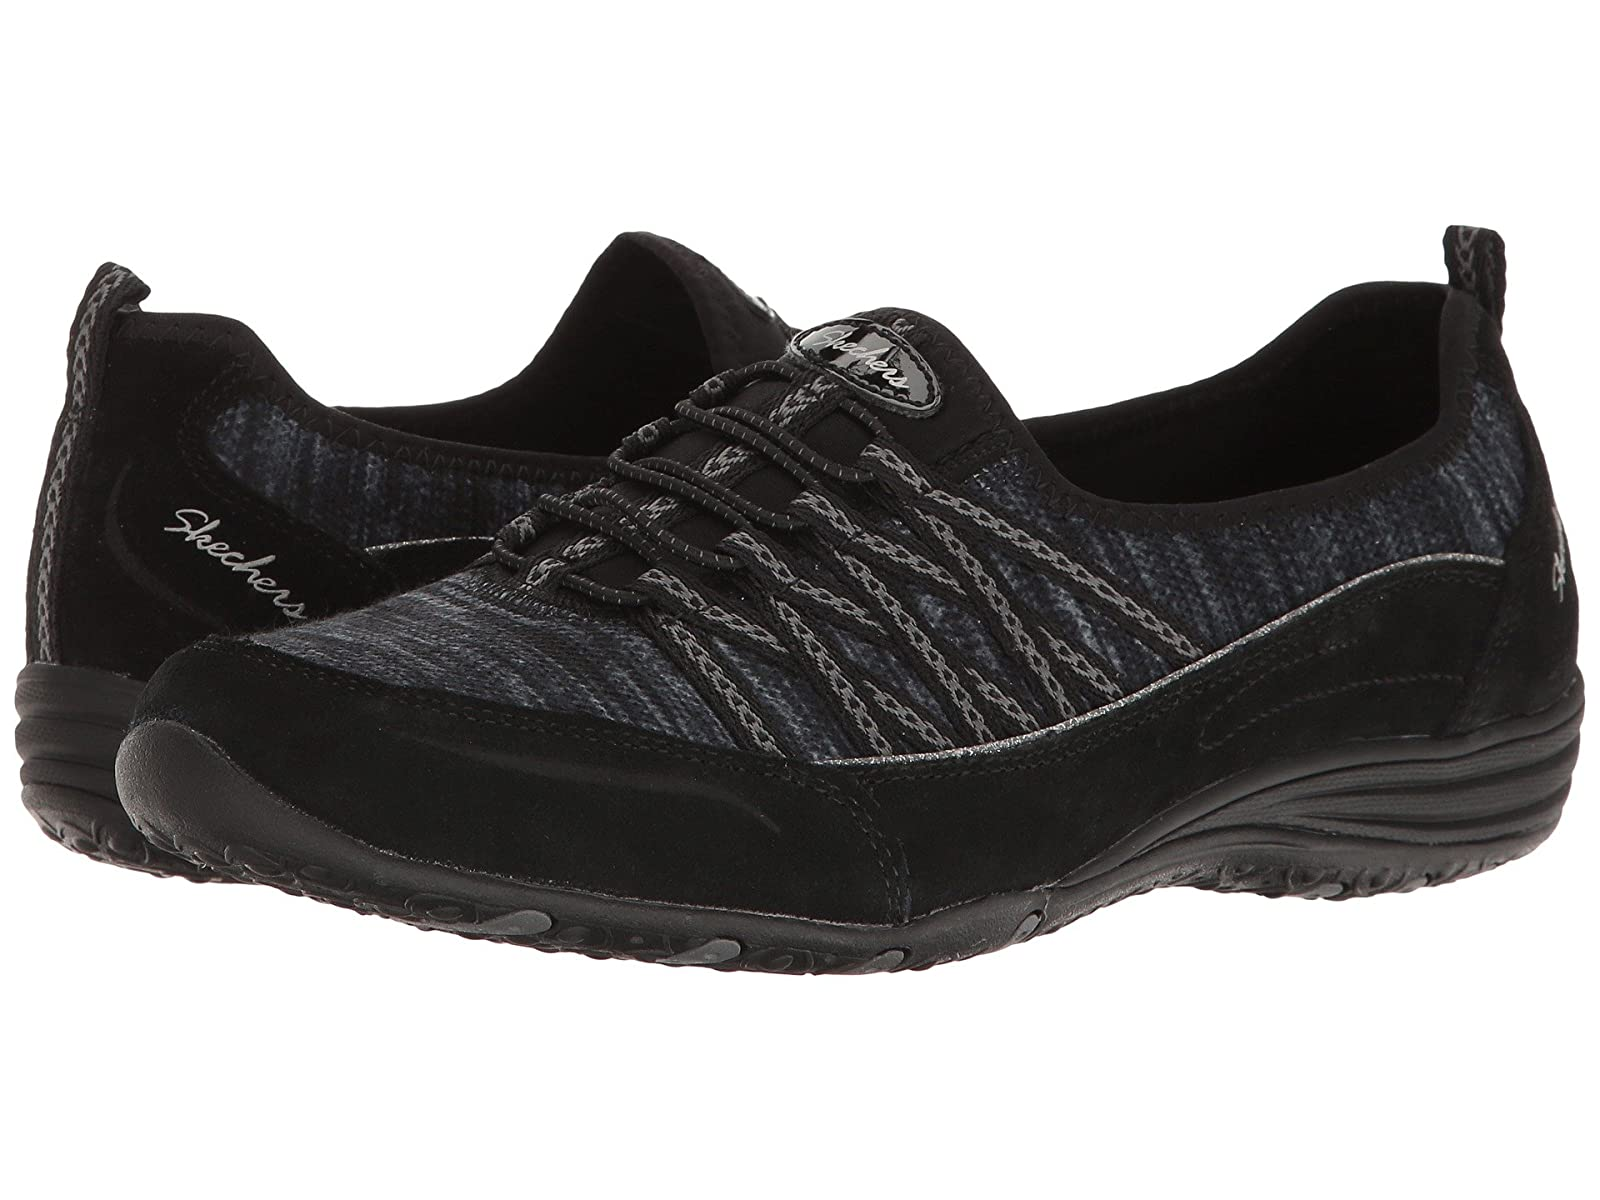 SKECHERS UnityCheap and distinctive eye-catching shoes